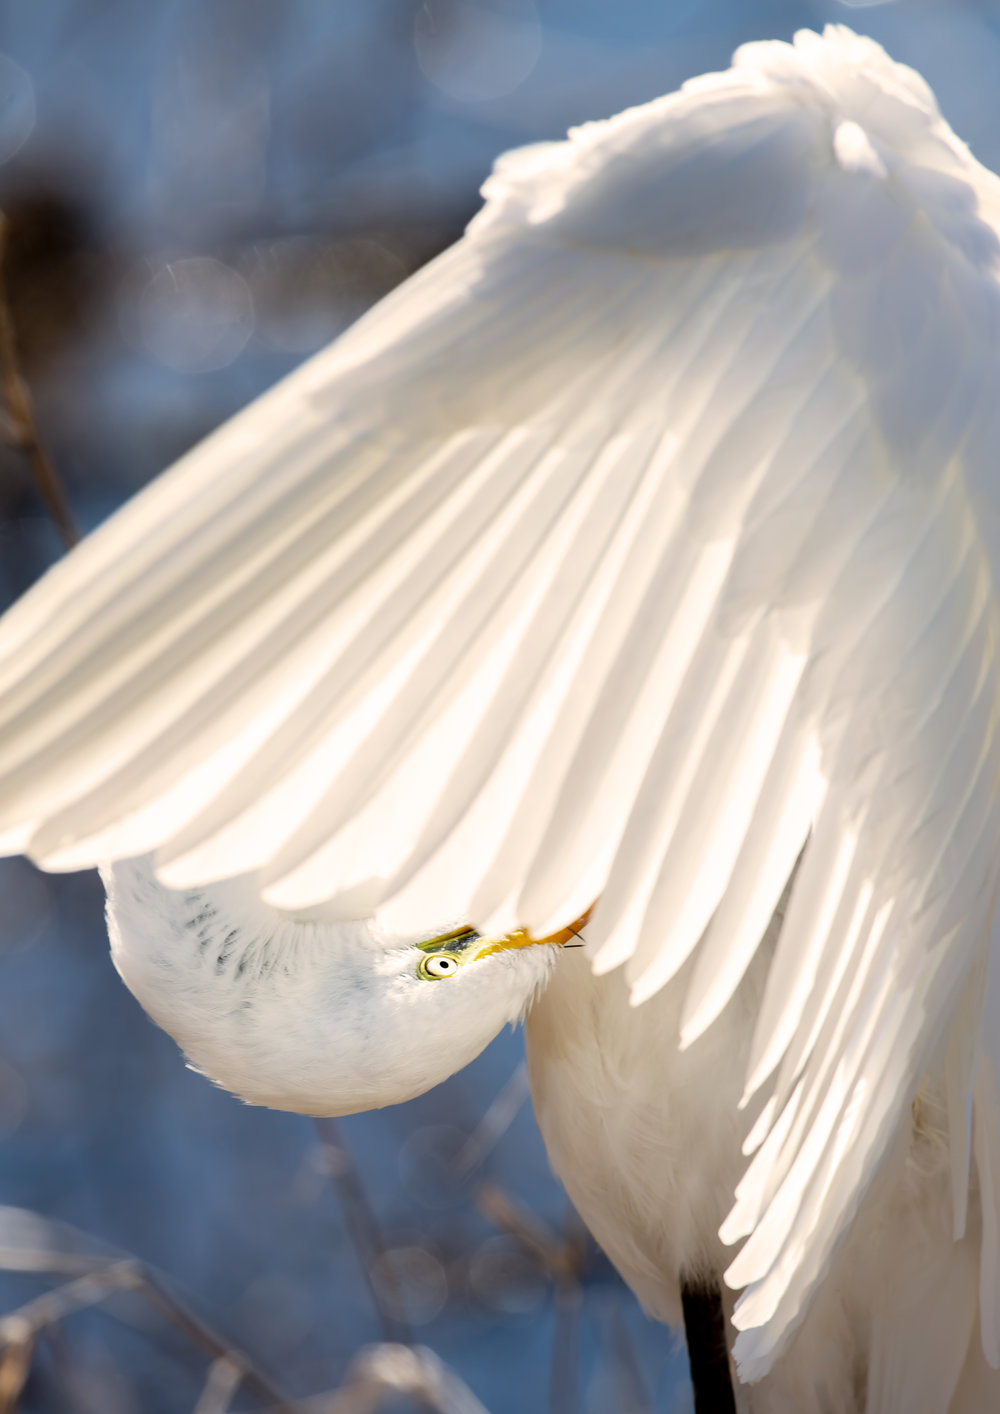 Great-Egret-Preening-Saved-for-web-Cropped-2-jjk.jpg